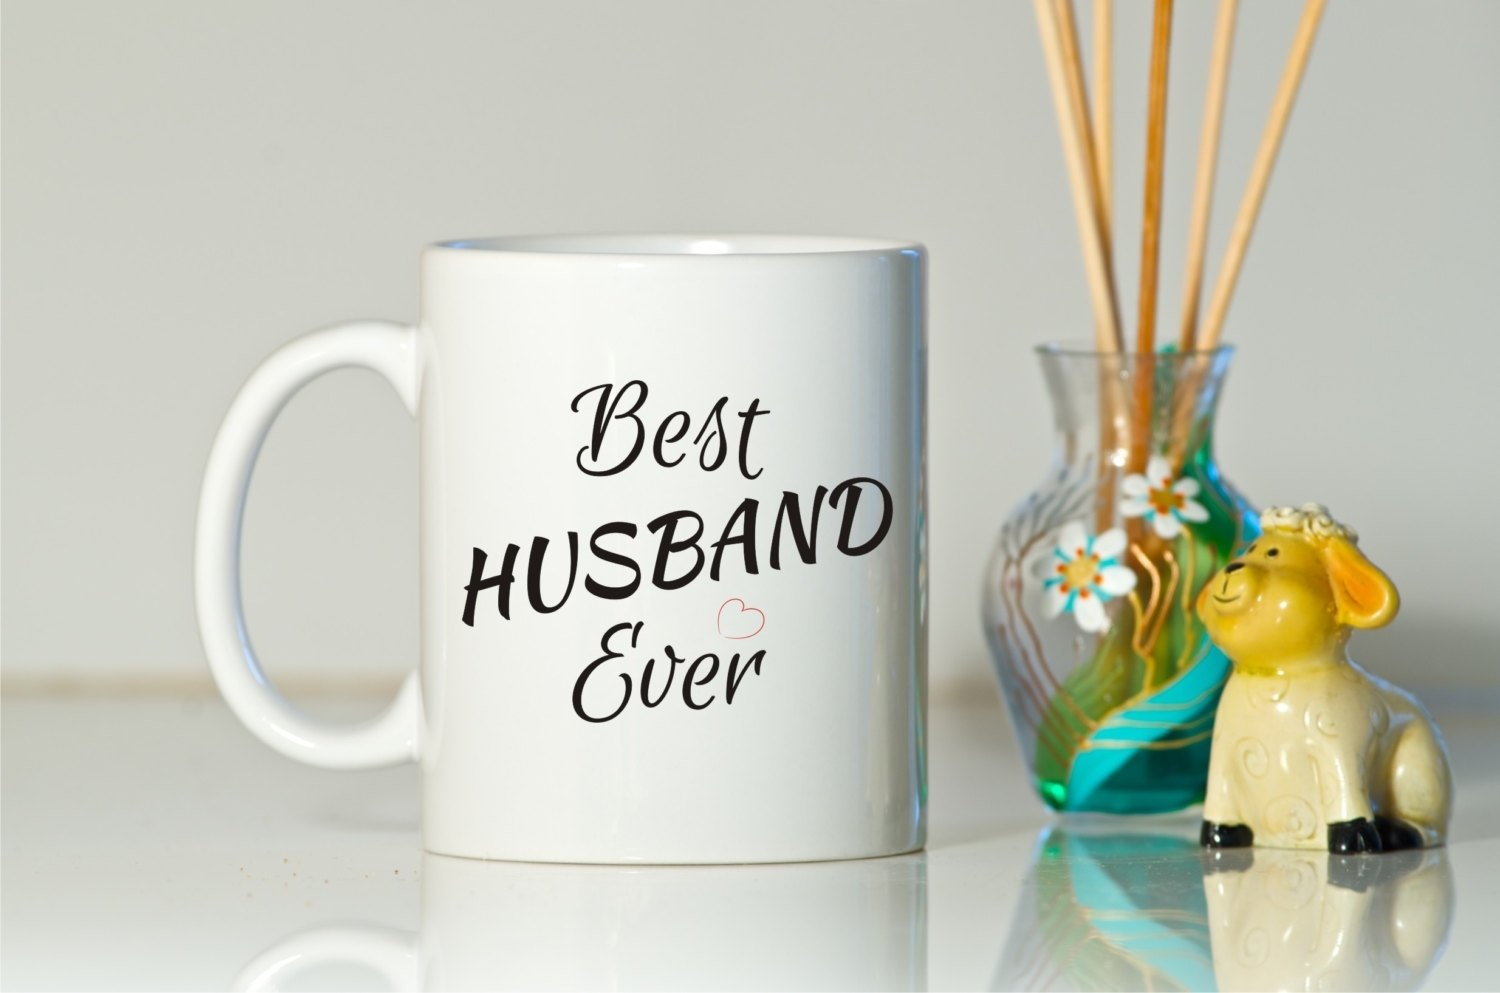 10 Fabulous Birthday Gift Idea For Husband first birthday gift for husband wife after wedding marriage anniversary 2020